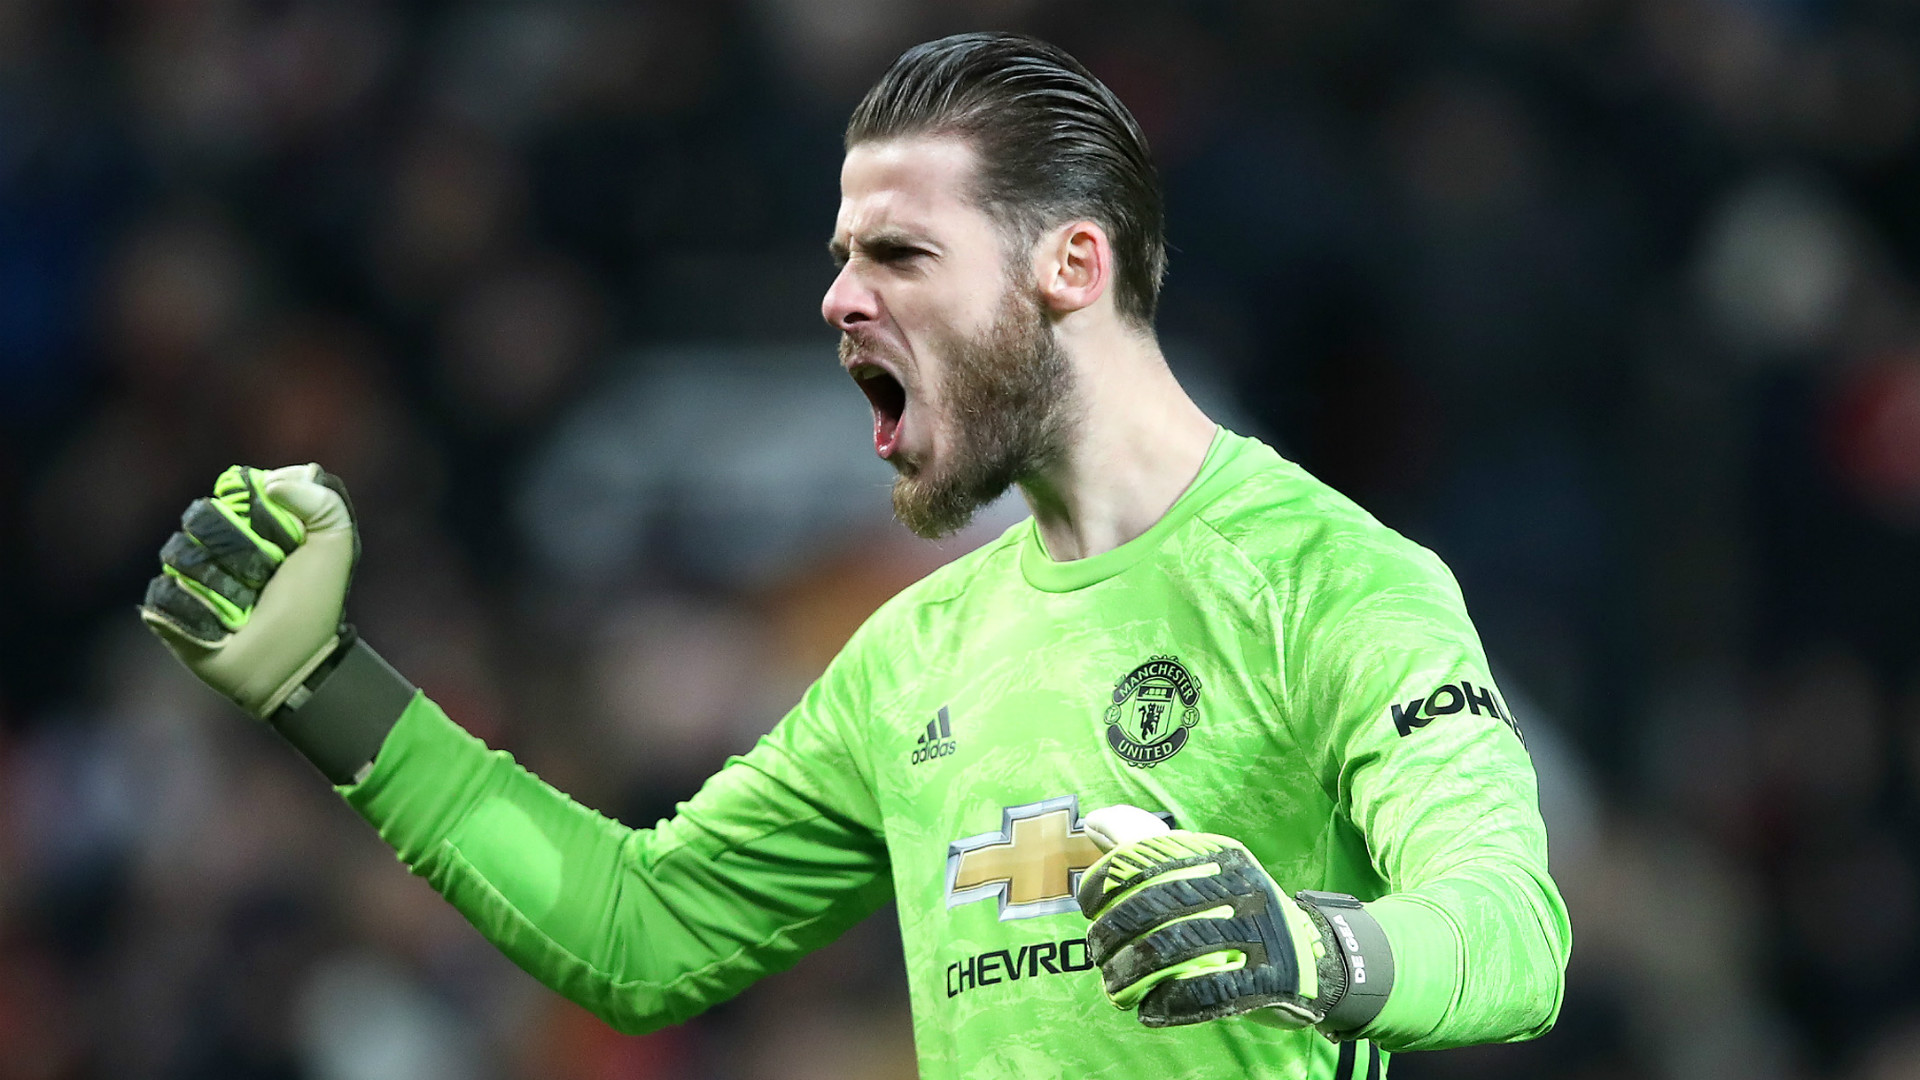 De Gea has been best goalkeeper in the world for a decade, says Manchester United manager Solskjaer